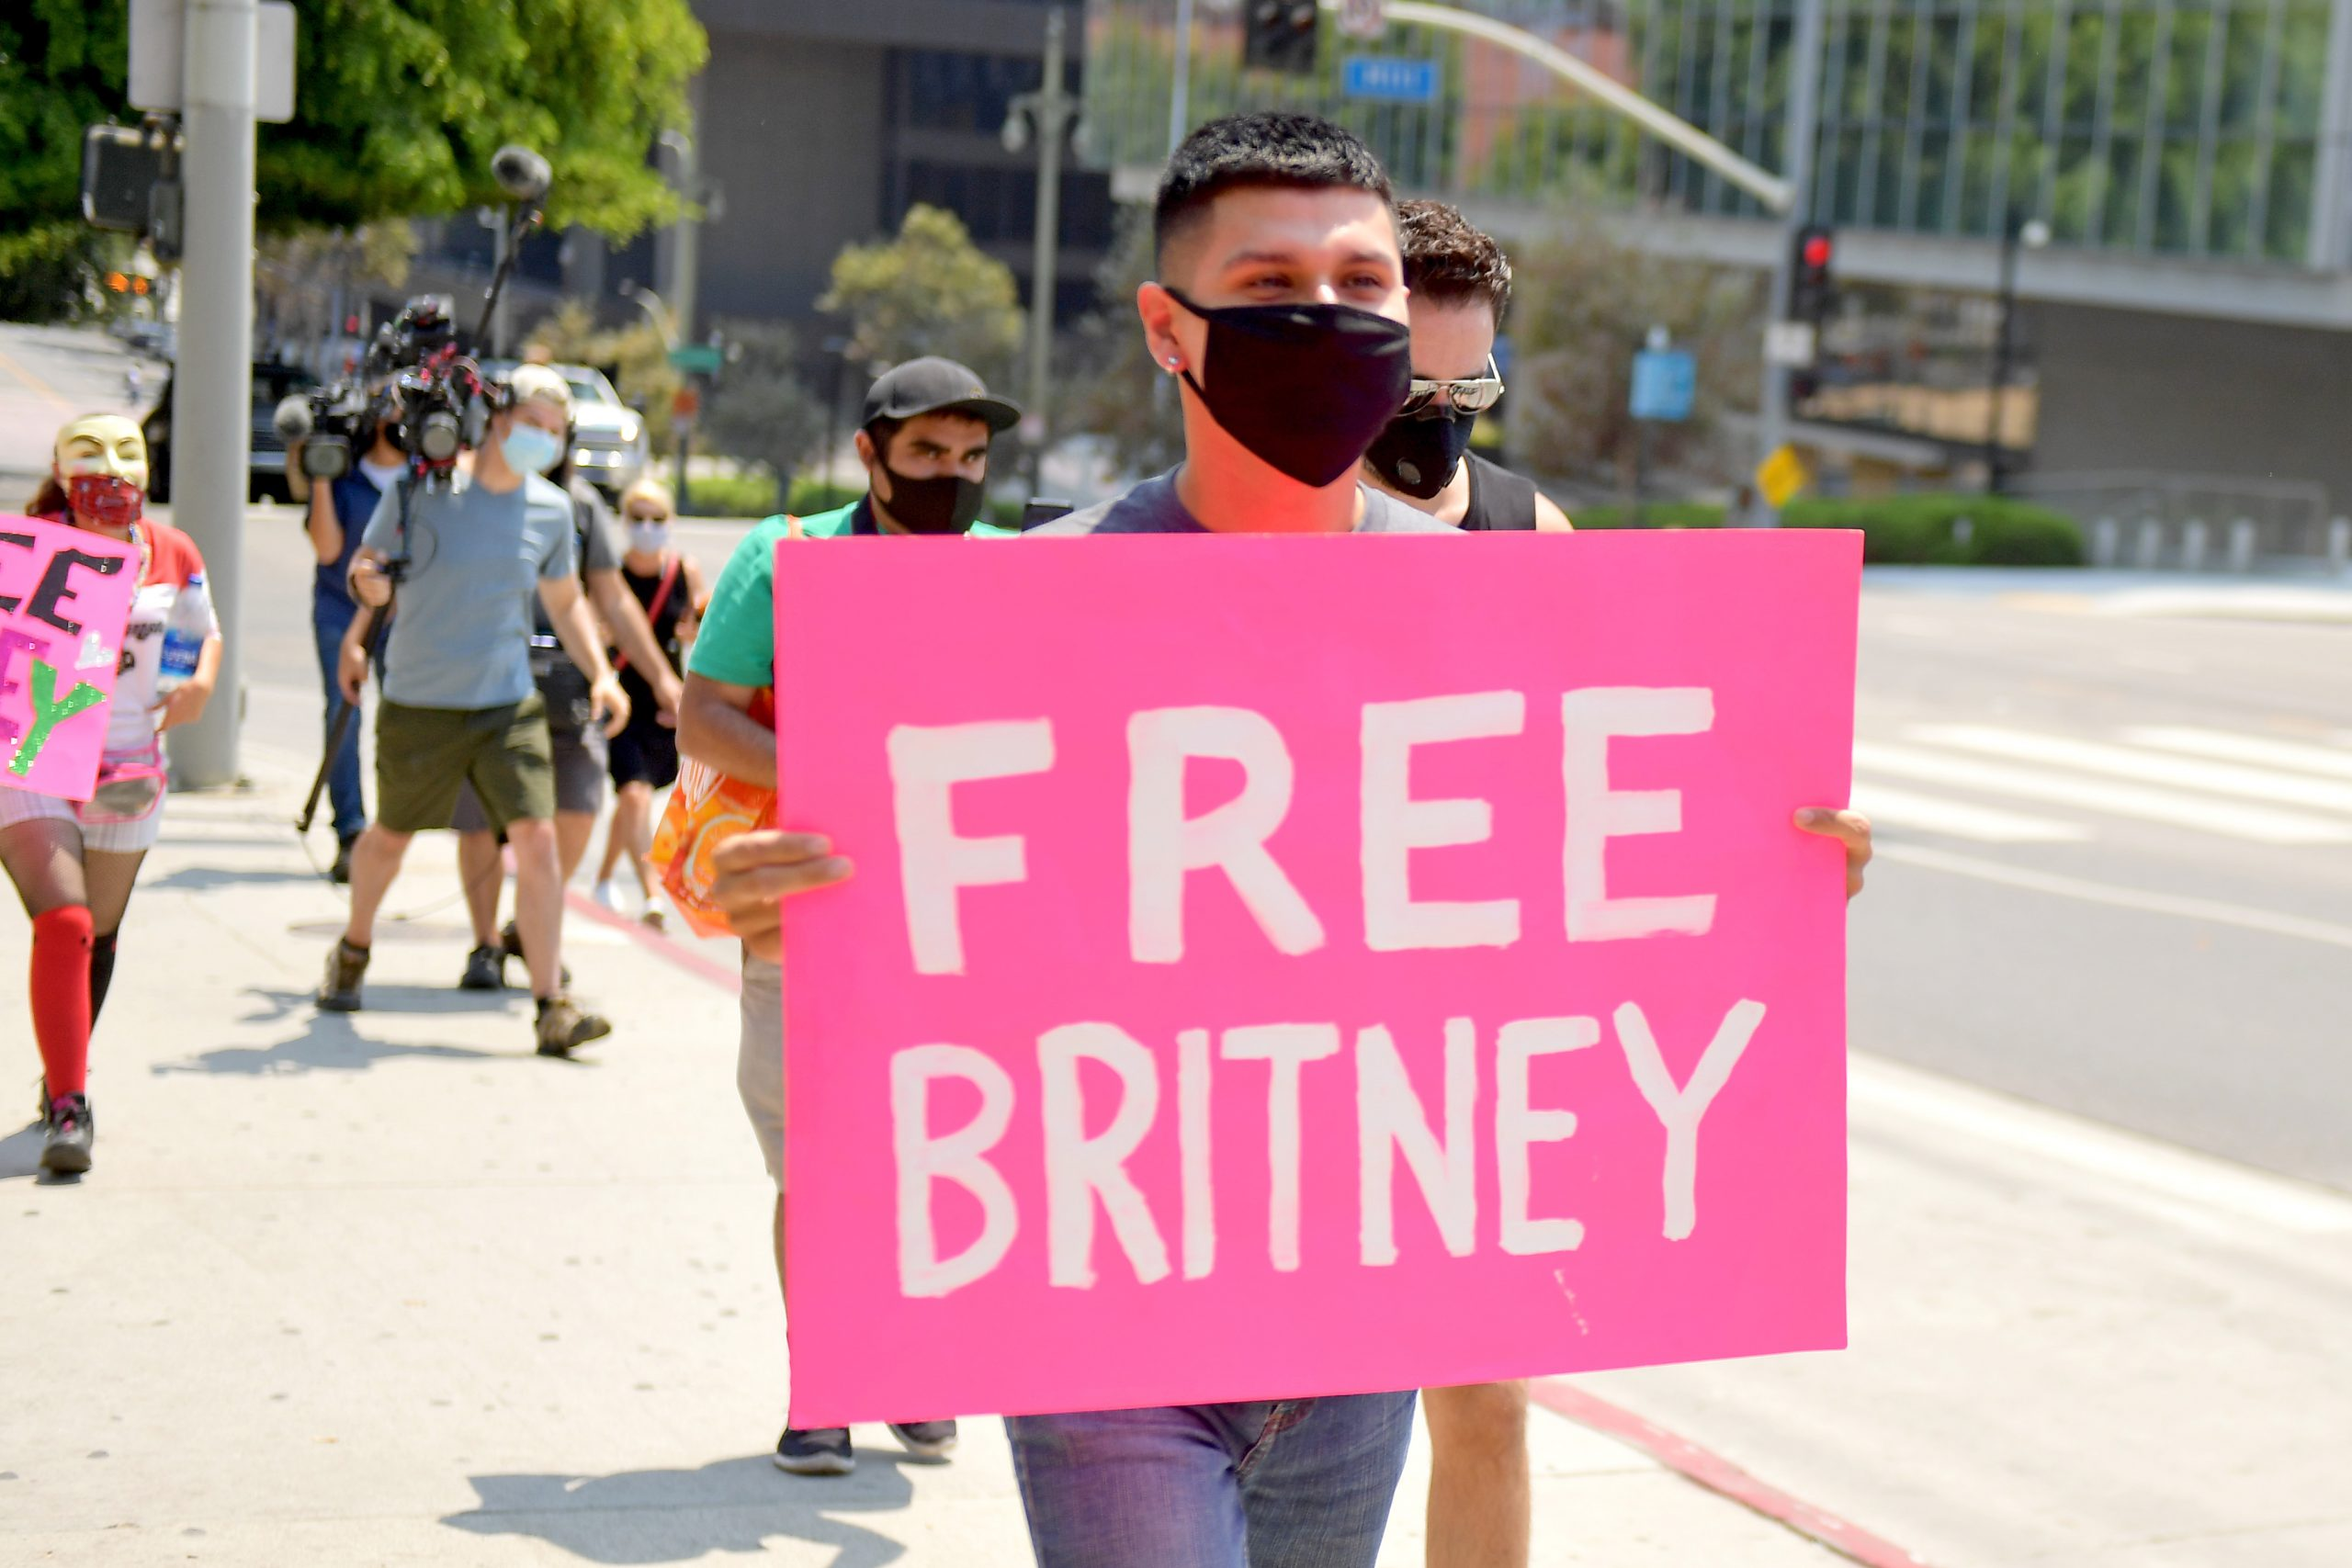 #FreeBritney protestors outside the courthouse during a status hearing  for Britney Spears' conservatorship